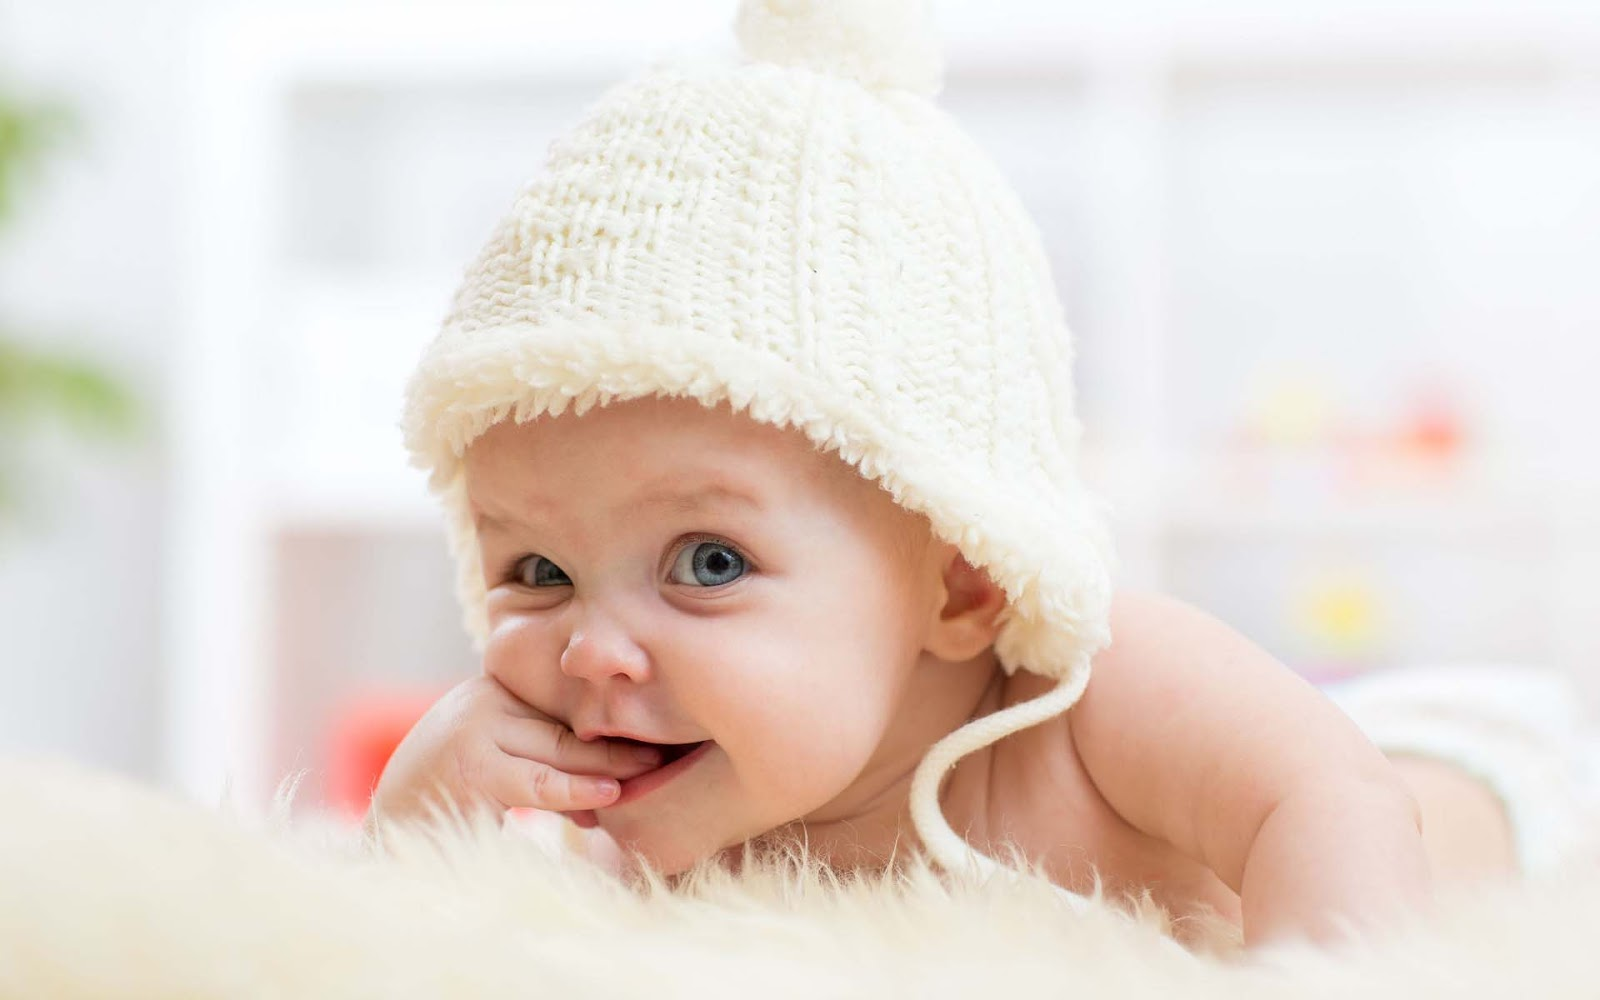 Cute Baby Wallpapers Hd: Cute And Lovely Baby Pictures Free Download